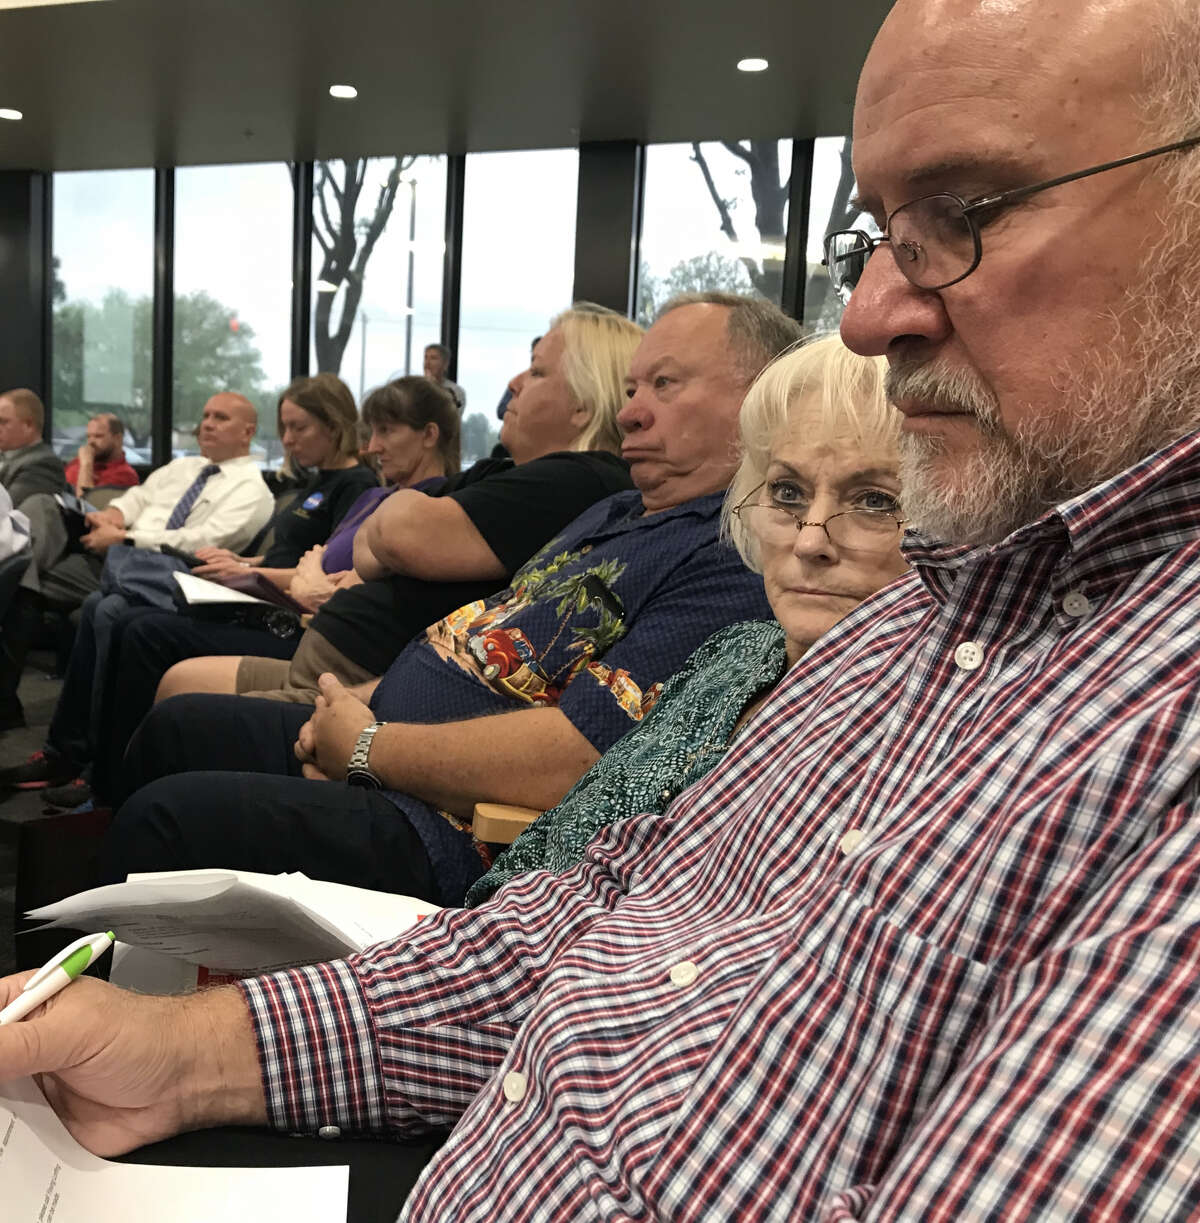 Caye and Gerard Hauser, residents of an area that was annexed by Pearland, attend a hearing last year. The city later repealed the annexation.